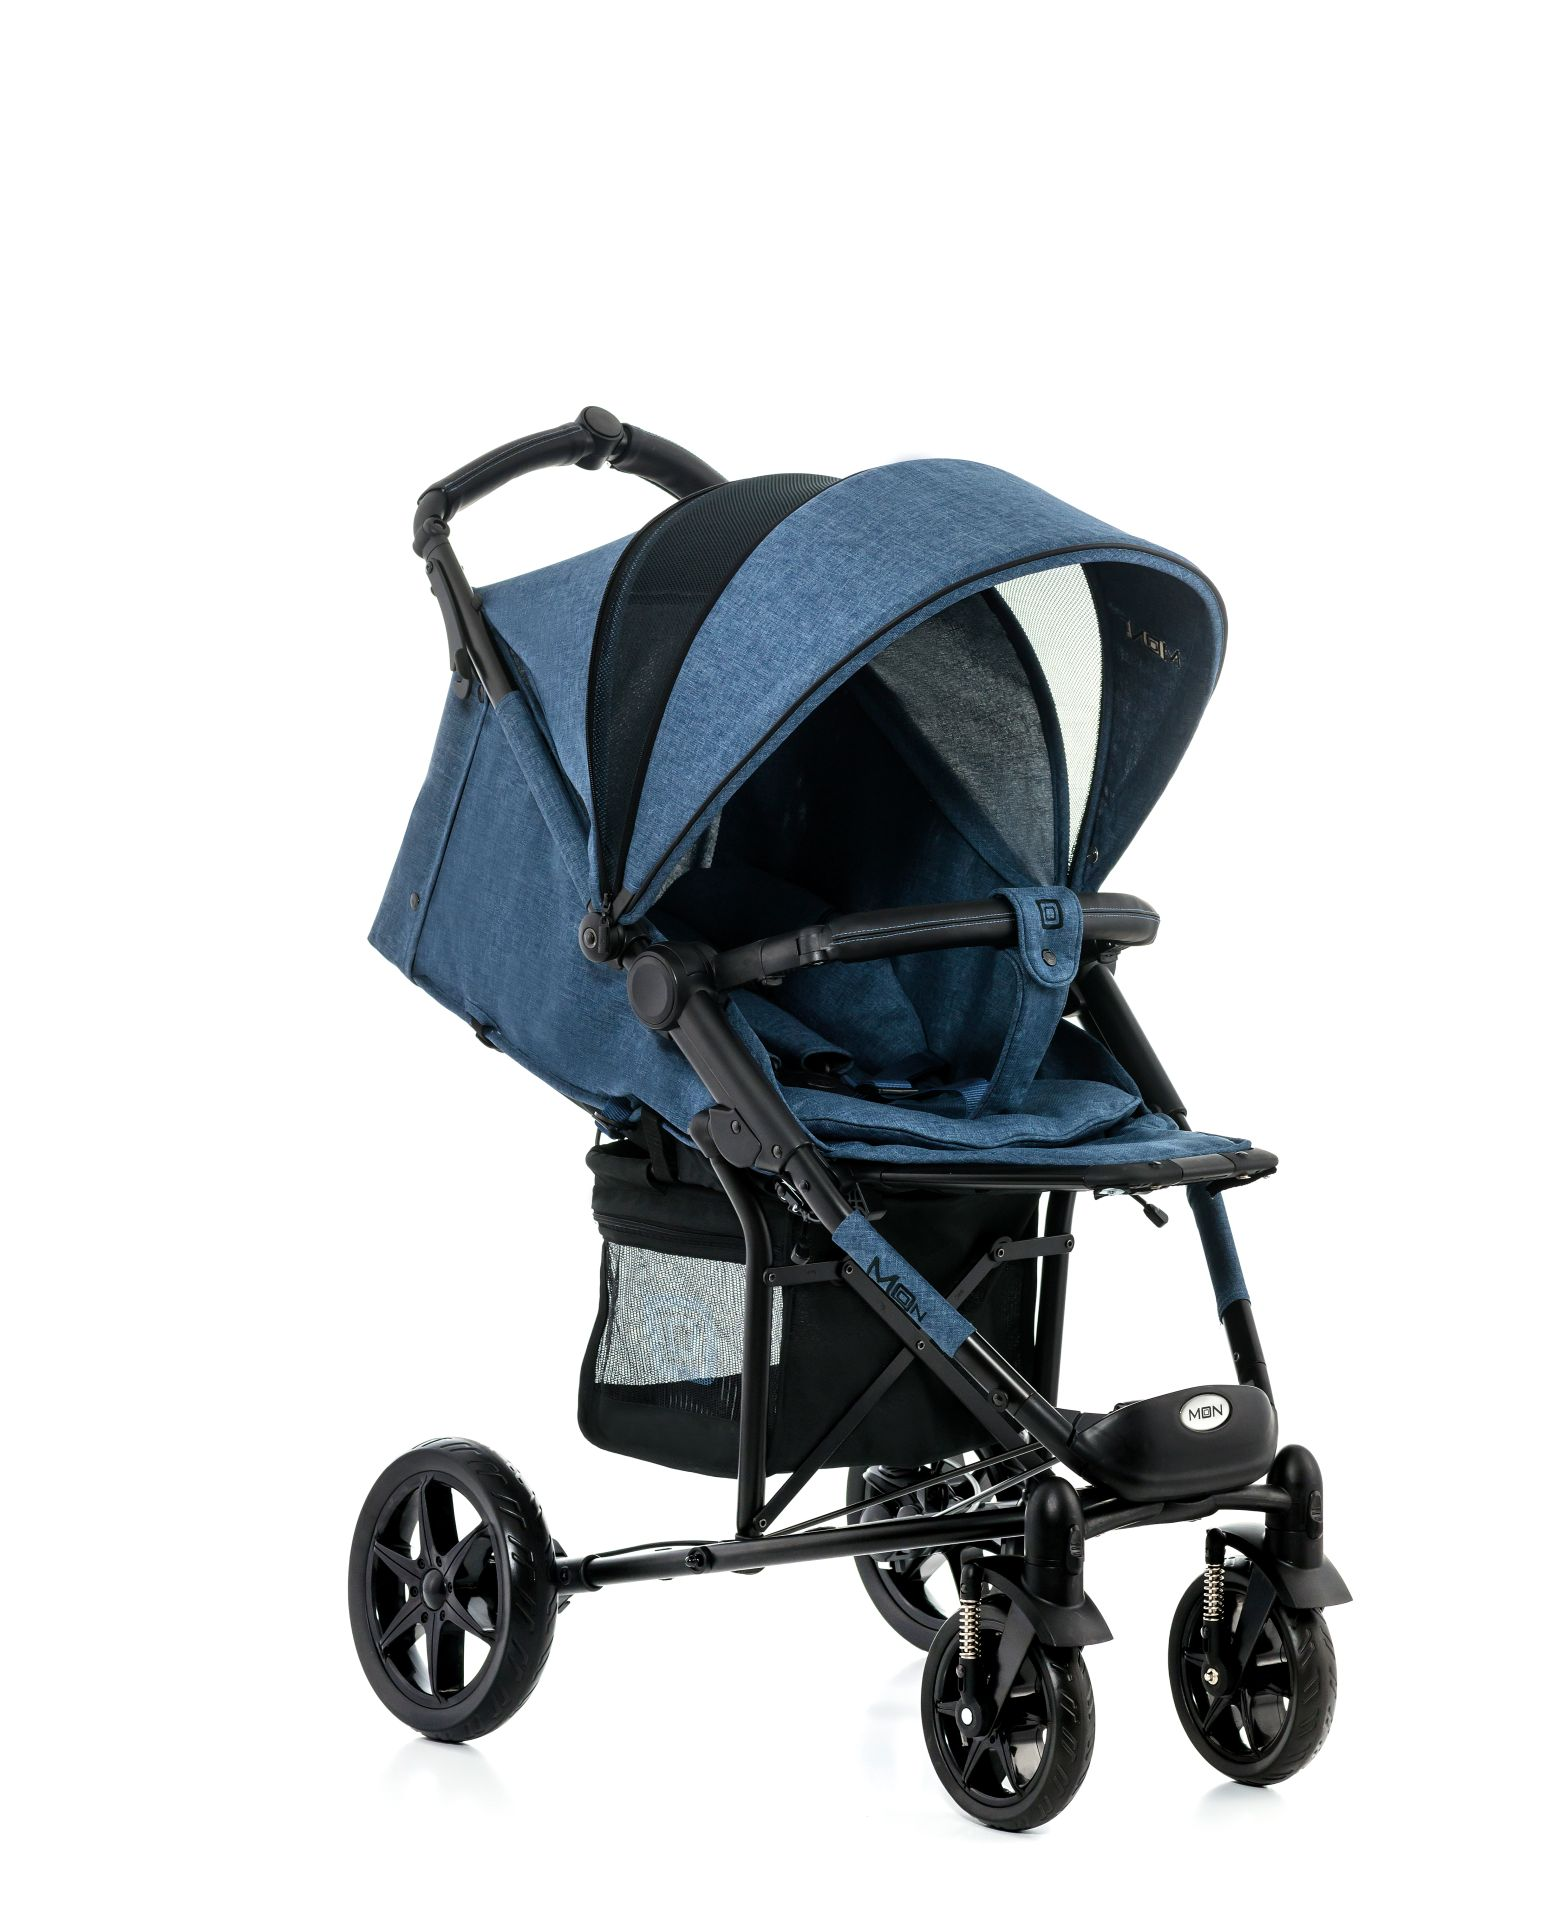 moon buggy flac 2017 blue melange buy at kidsroom strollers. Black Bedroom Furniture Sets. Home Design Ideas